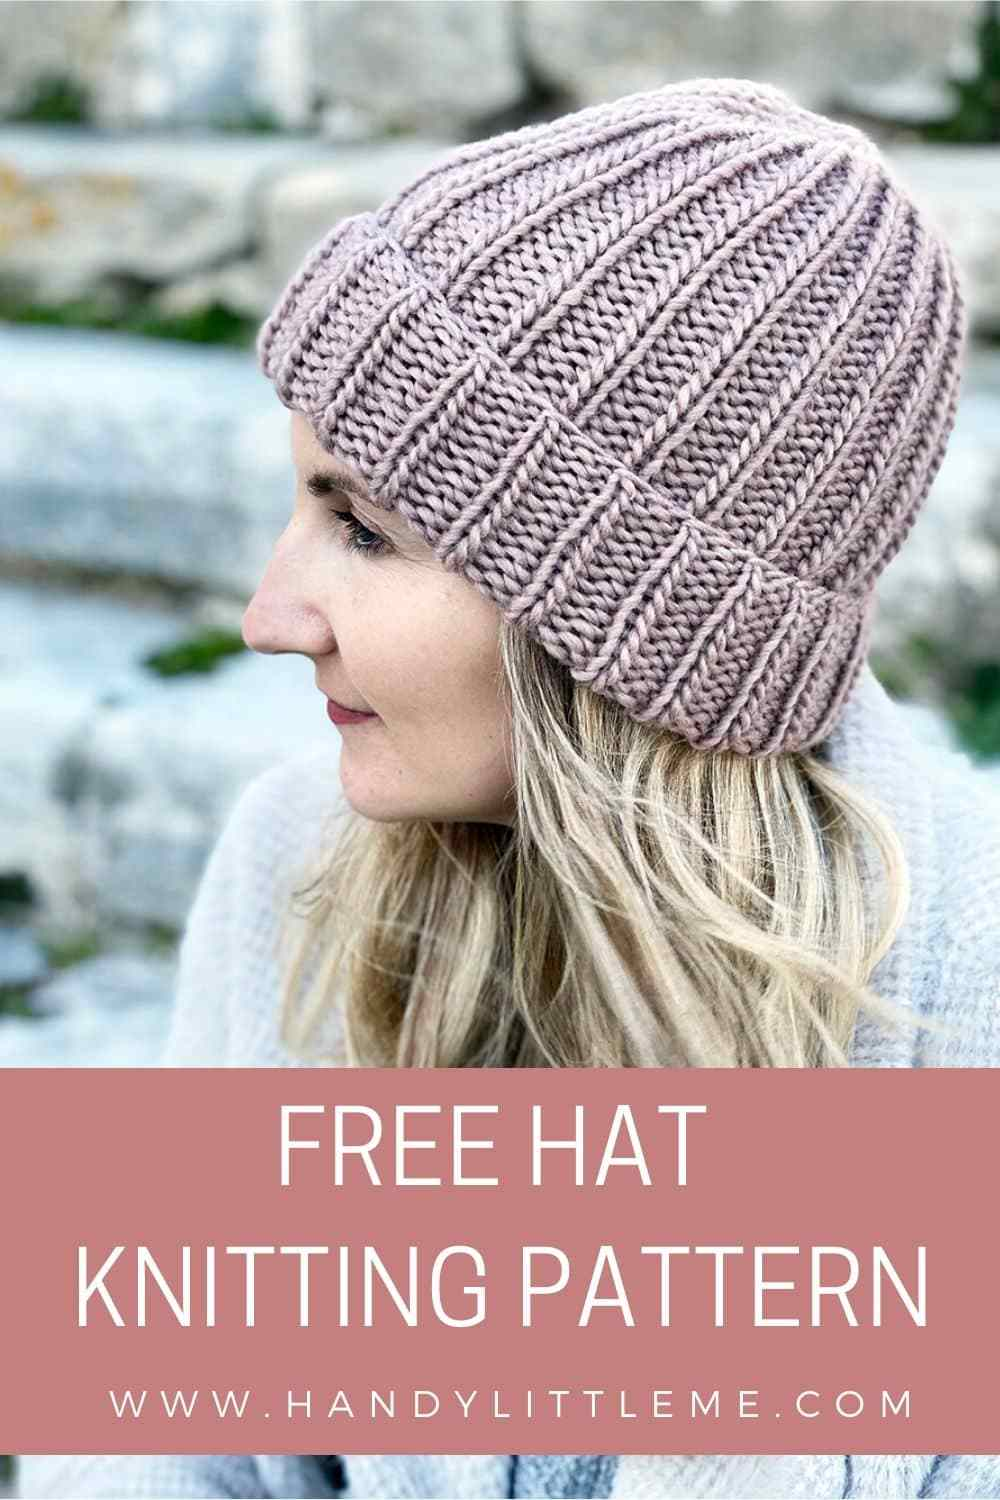 How to knit a hat for beginners